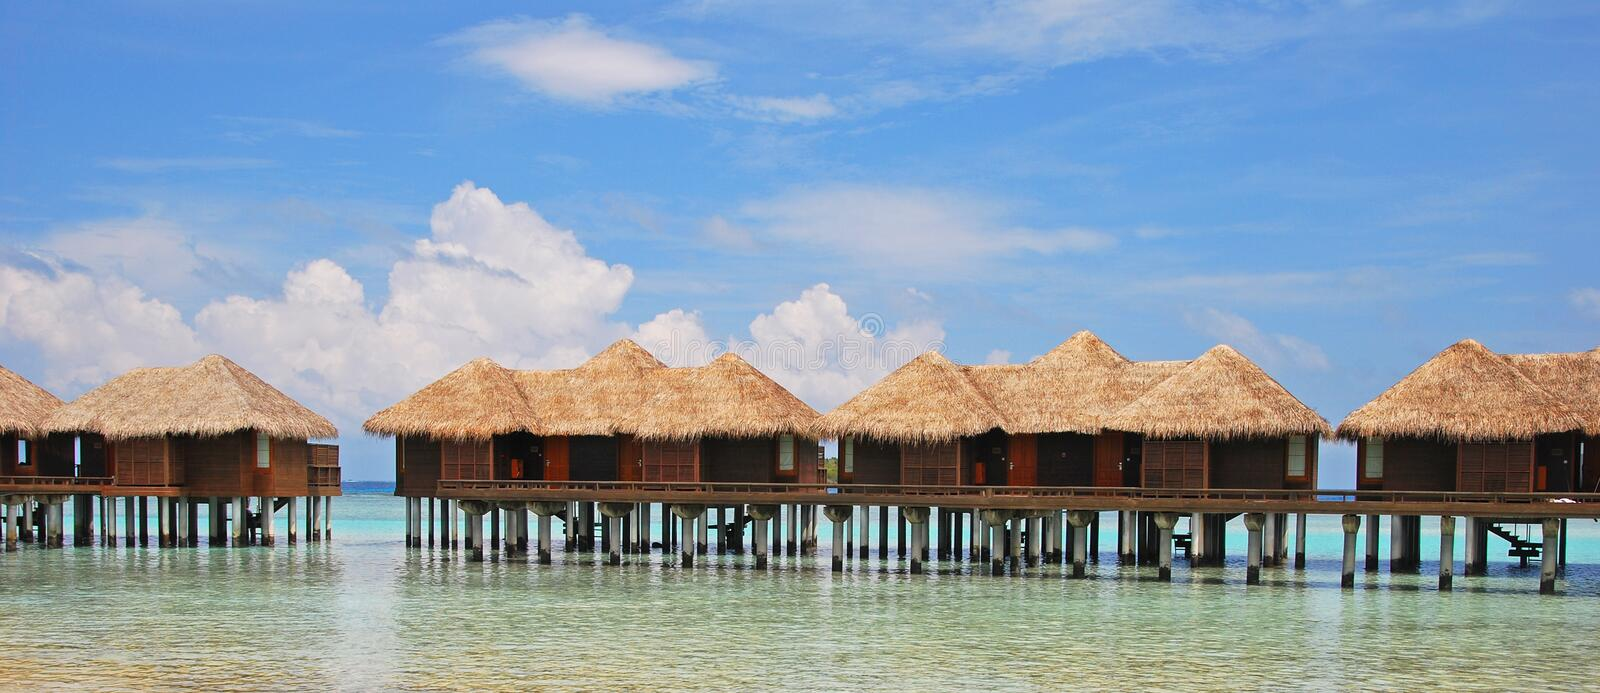 Vacation of a Life Time on Overwater Bungalow stock photos